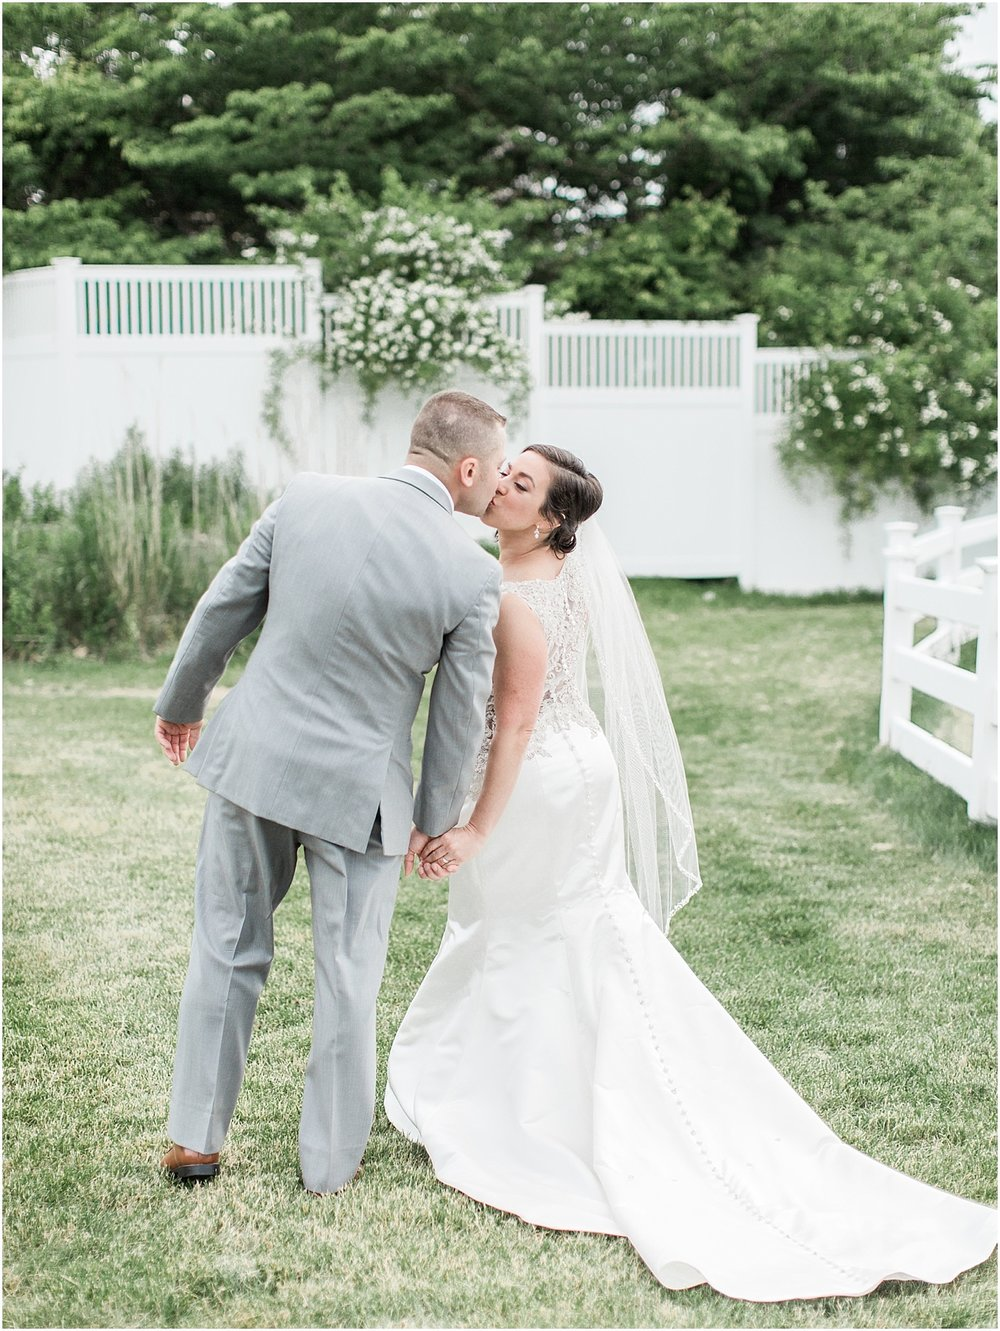 nicole_stephen_cape_club_nicky_falmouth_cod_boston_wedding_photographer_meredith_jane_photography_photo_0178.jpg